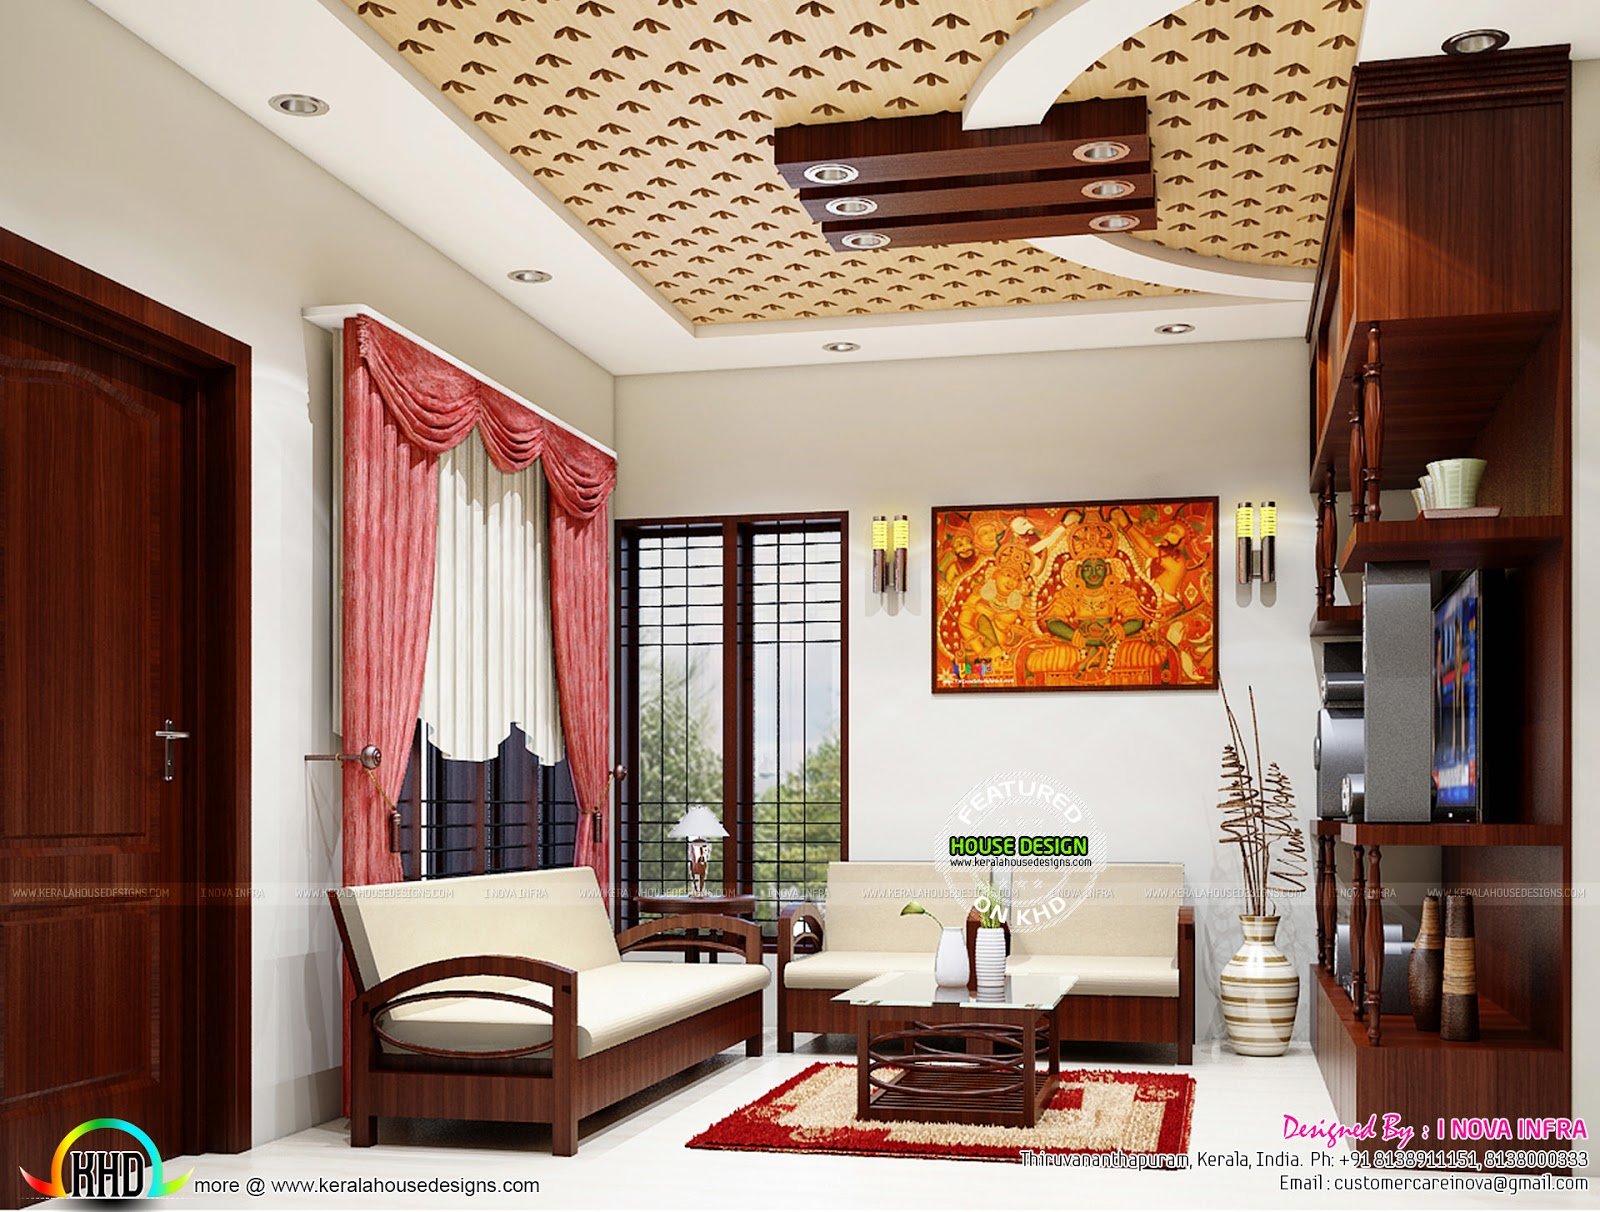 Kerala traditional interiors kerala home design and for House designs interior